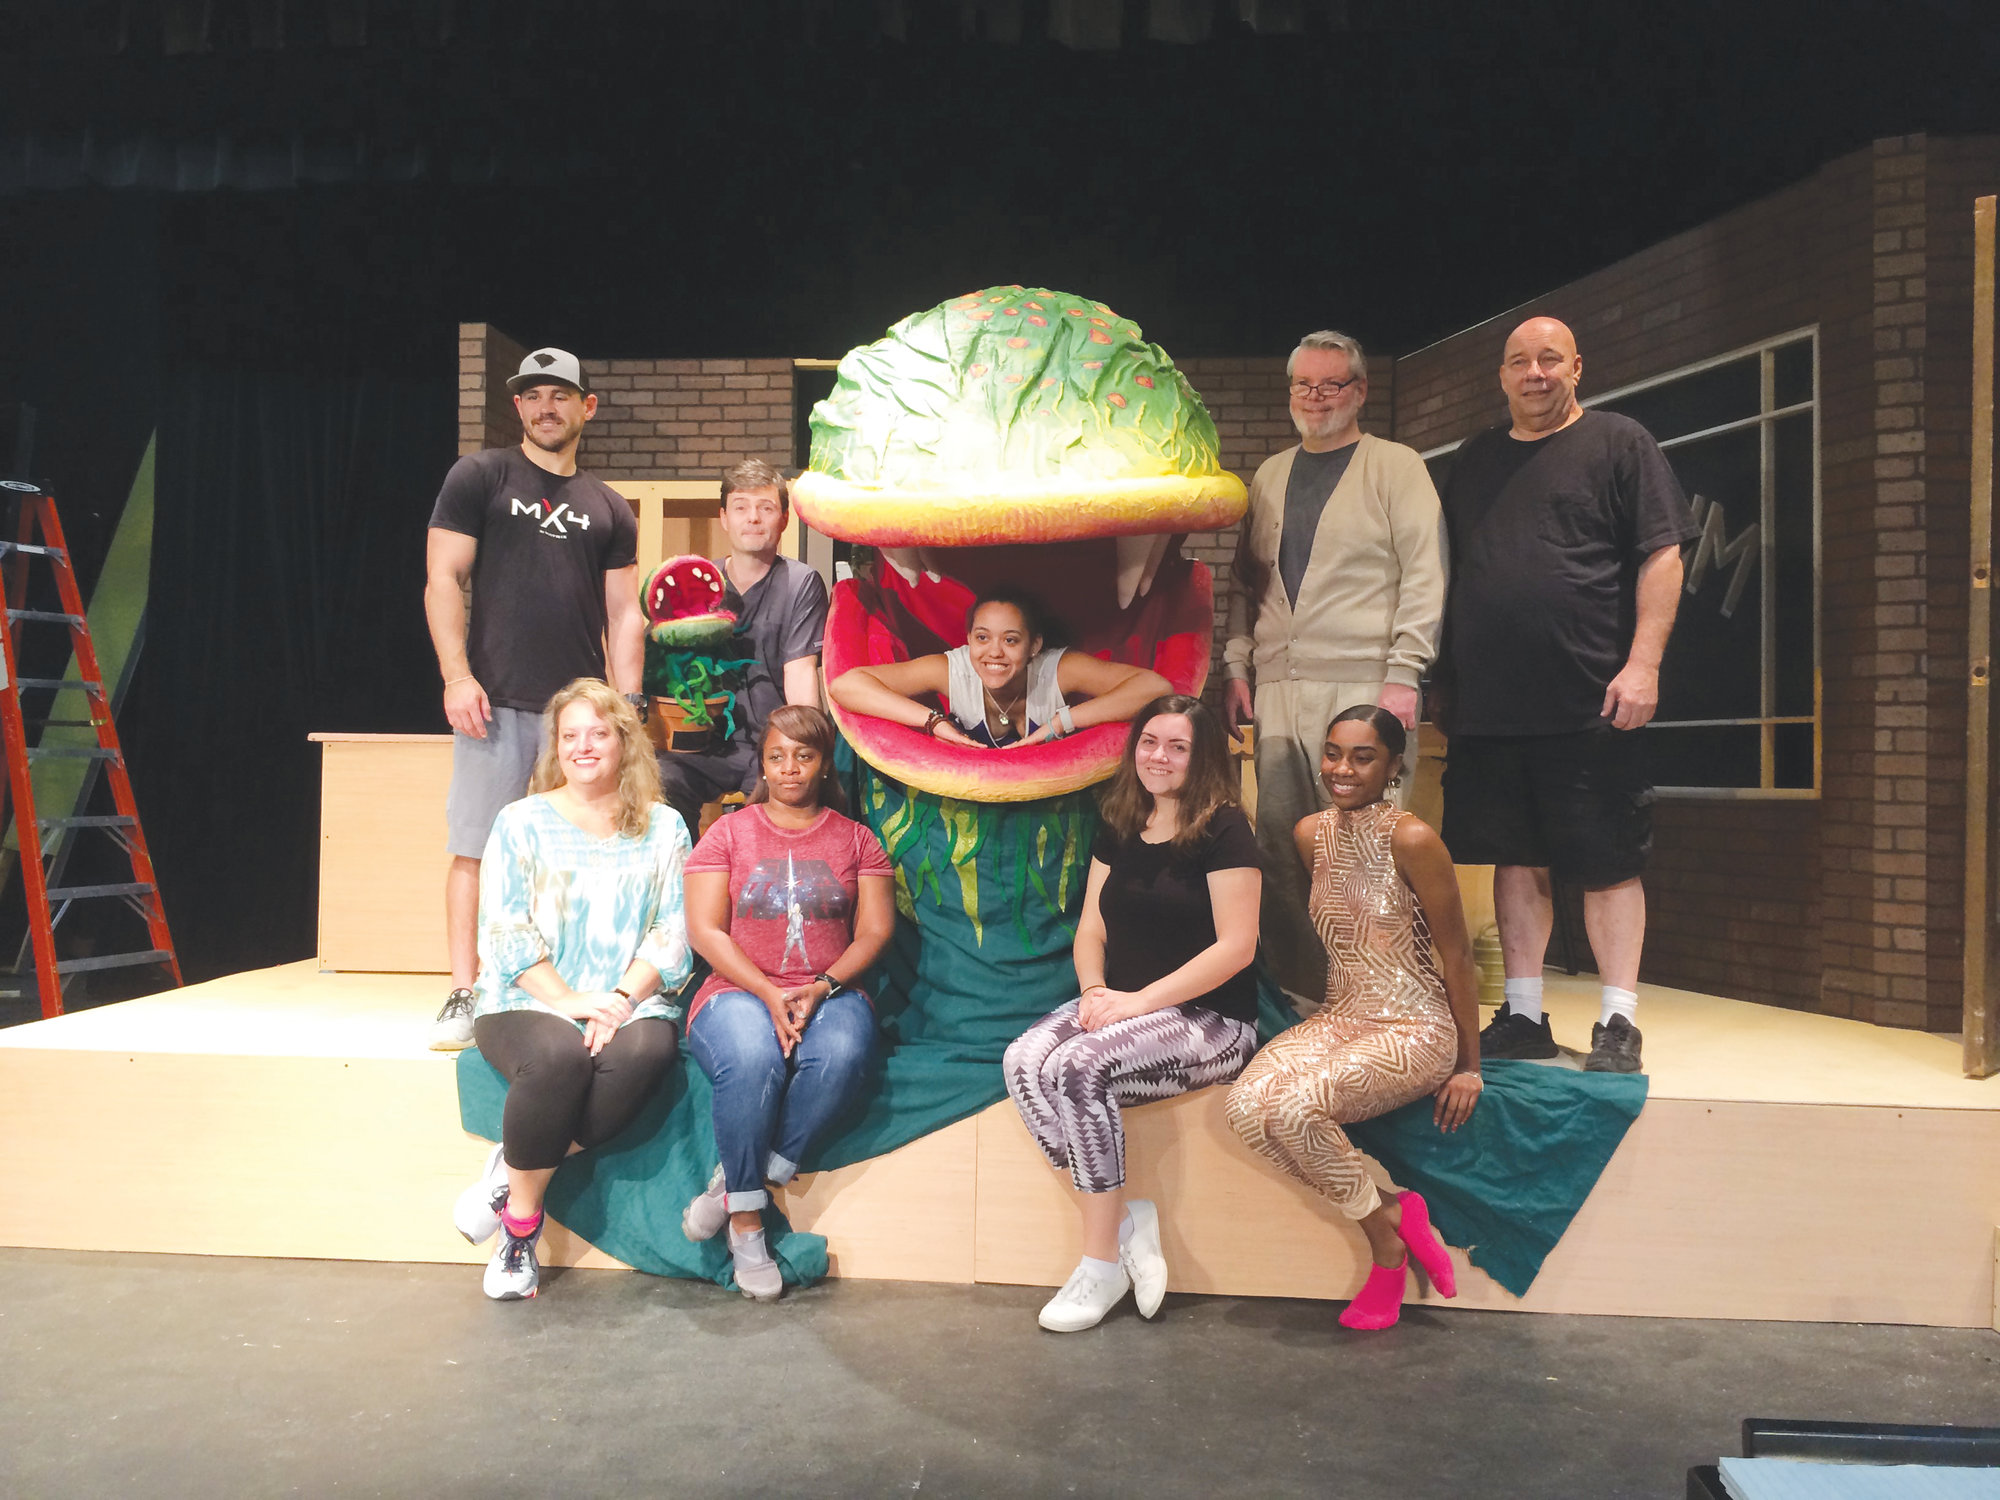 "IVY MOORE  / SPECIAL TO THE SUMTER ITEM  The cast of Sumter Little Theatre's ""Little Shop of Horrors"" pauses during a recent rehearsal for a group photo.  From left are: top row -Matt Wilt, Todd Warrick, Cierra Stewart (in plant), John Michael Osteen and David Shoemaker; front row - Alyssa Gibbs, Keonna Porter, Jaycie Wisor and Aaleyah Powell. The musical comedy opens Thursday, Oct. 18, and will run for 10 performances."